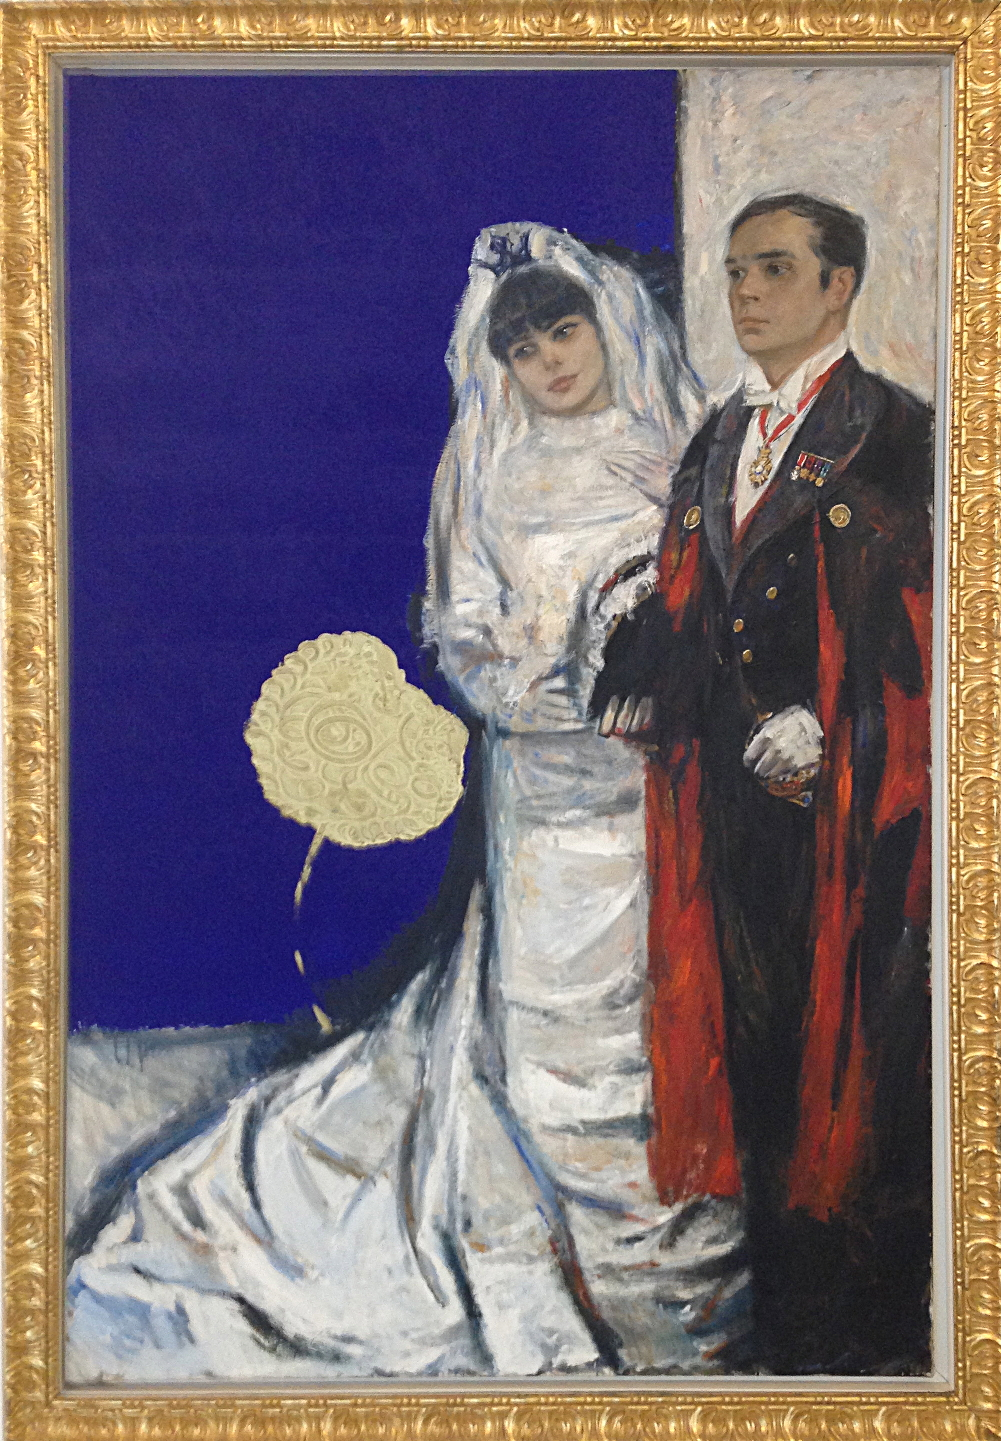 Unfinished portrait of Yves Klein and Rotraut Ueker, painted by and Yves Klein